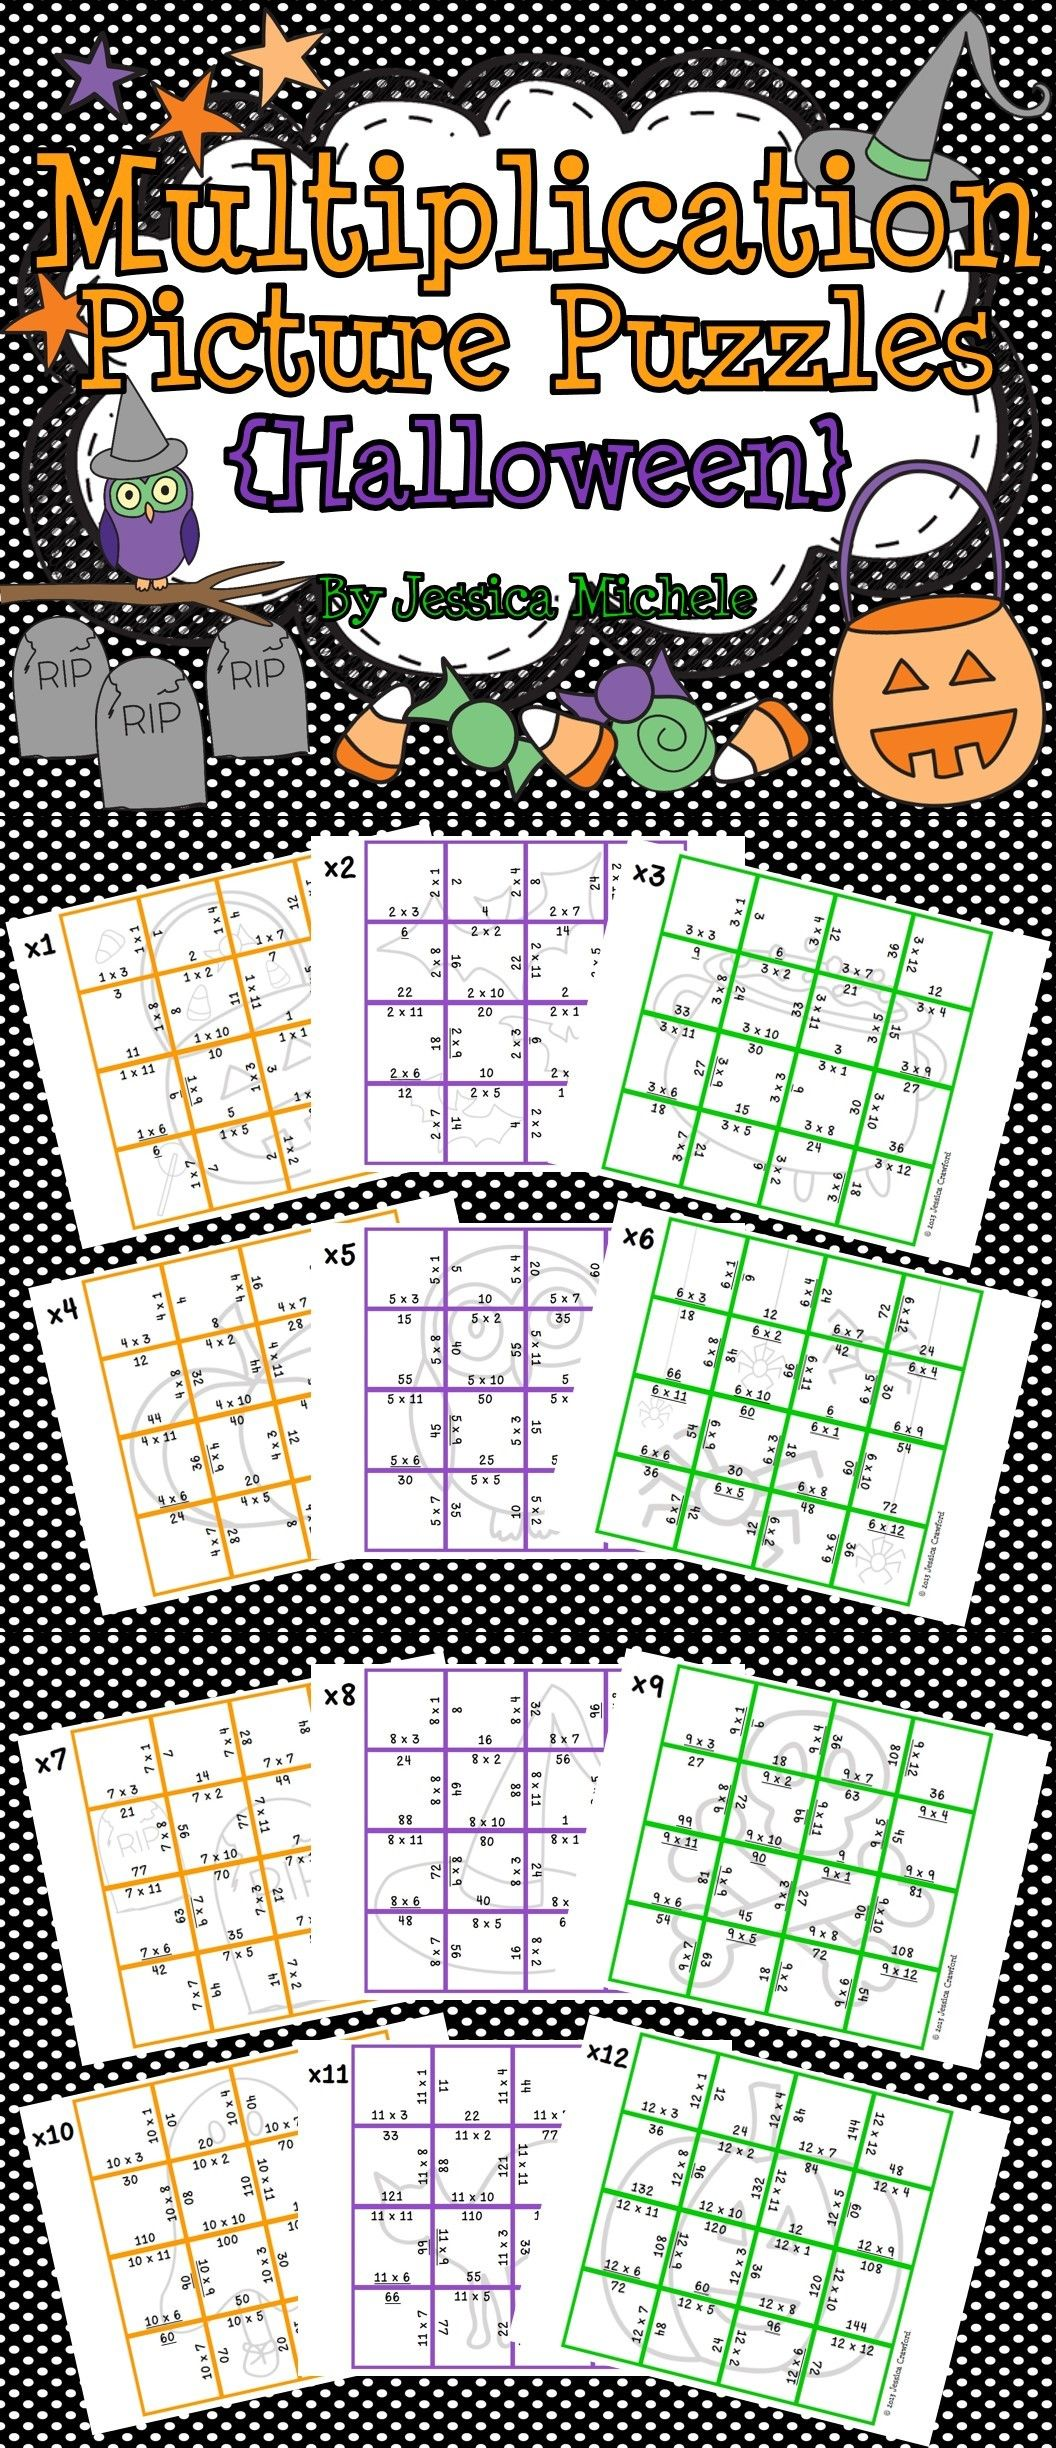 Multiplication Picture Puzzles Halloween